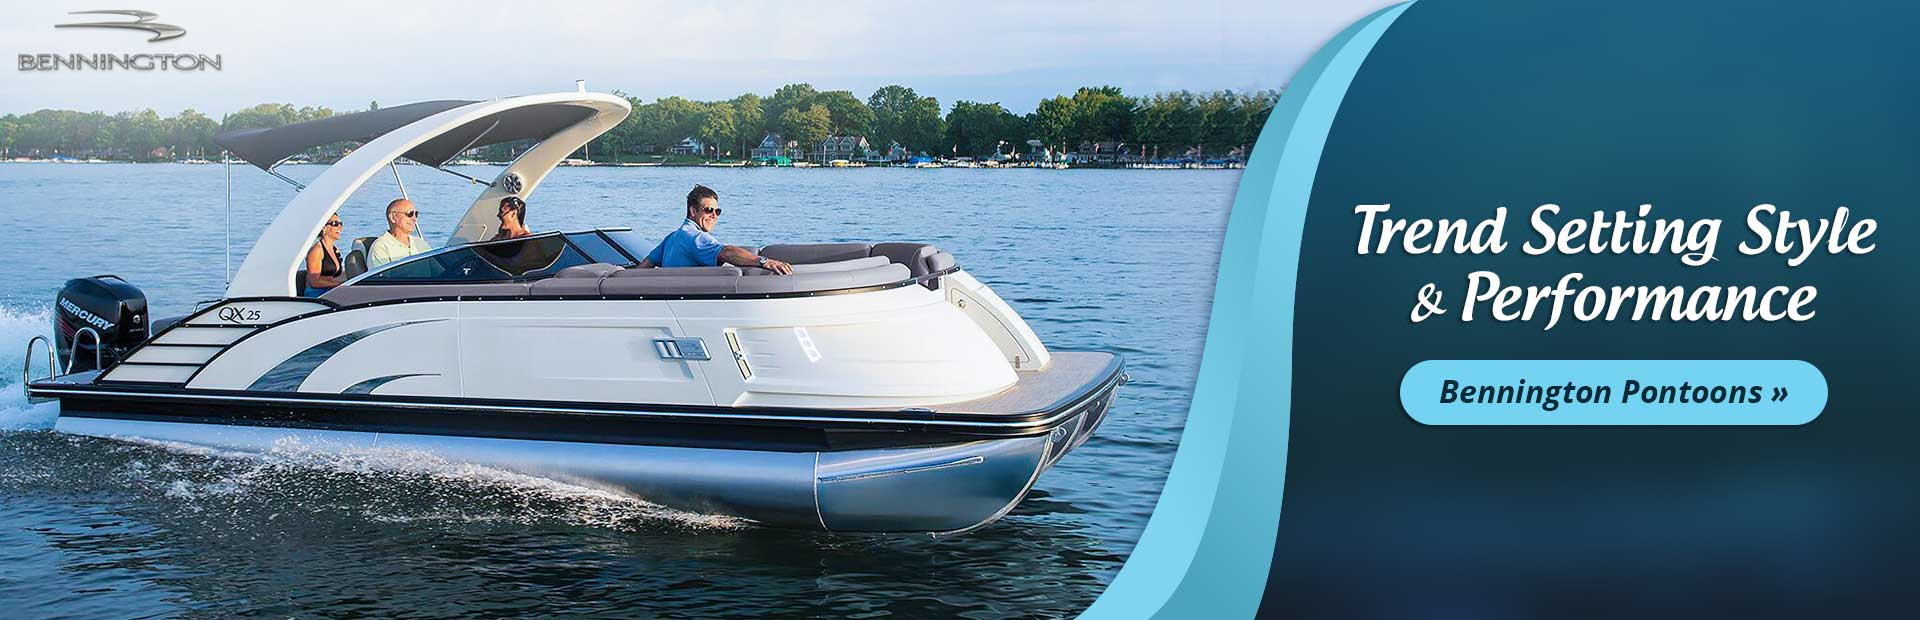 Click here to view Bennington pontoons.